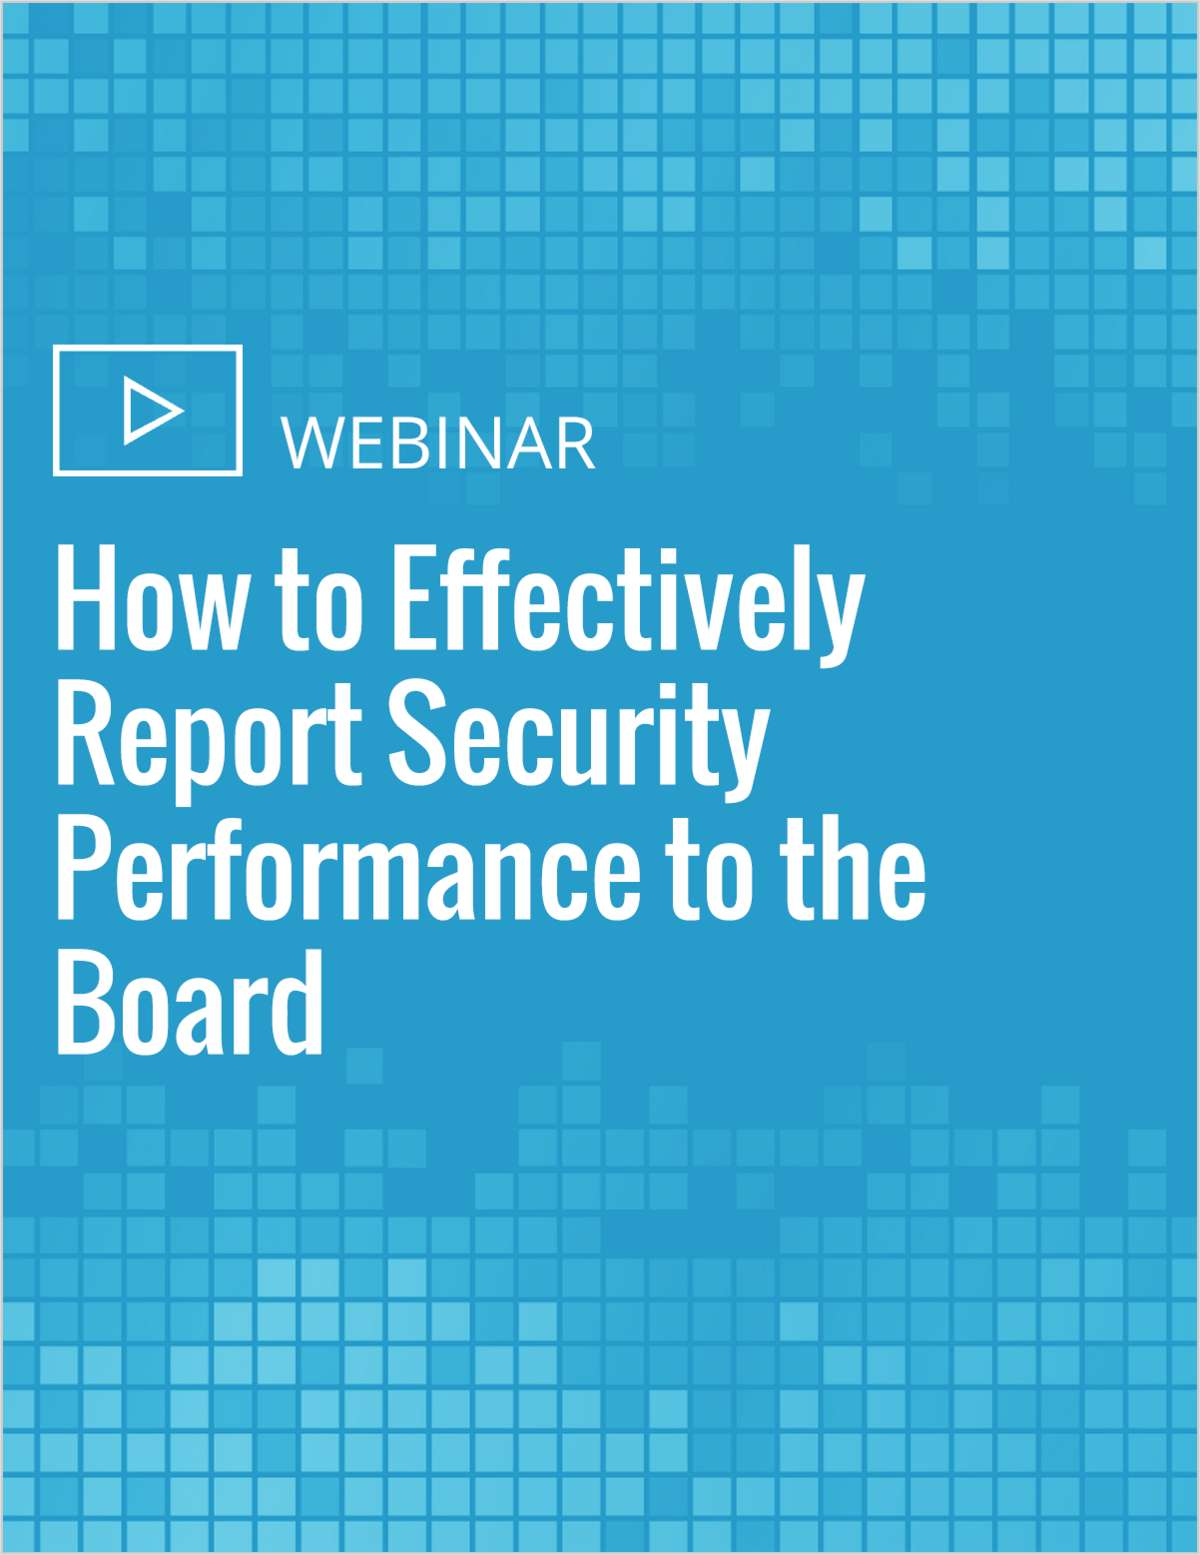 How to Effectively Report Security Performance to the Board